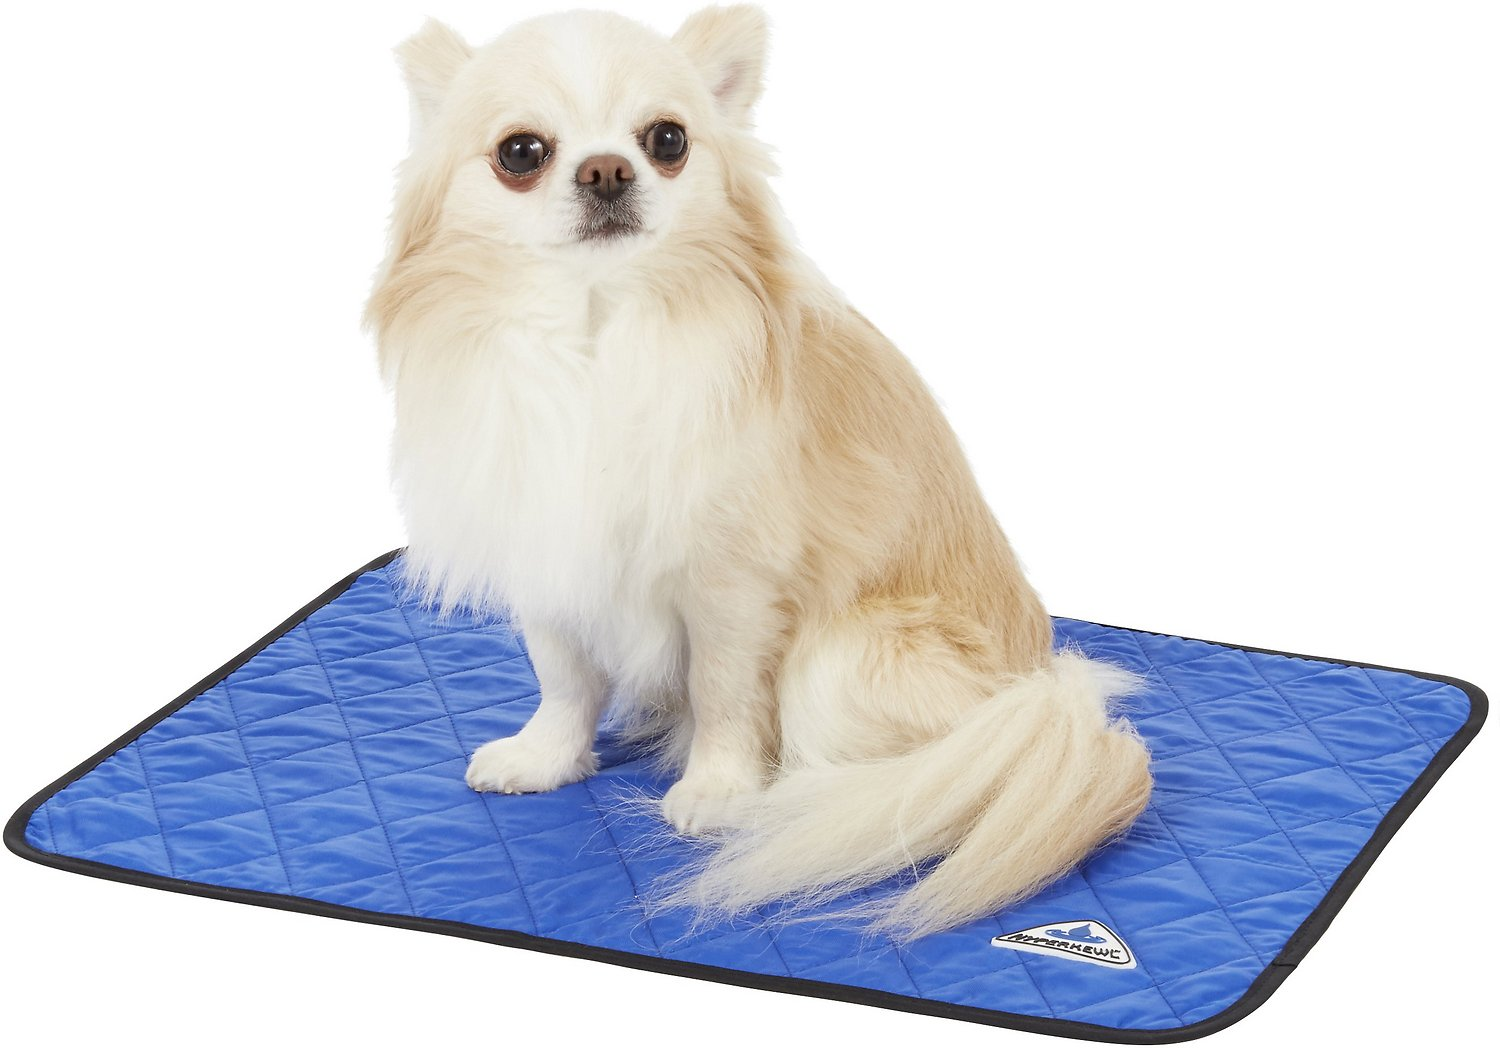 TechNiche International Evaporative Cooling Dog Pad